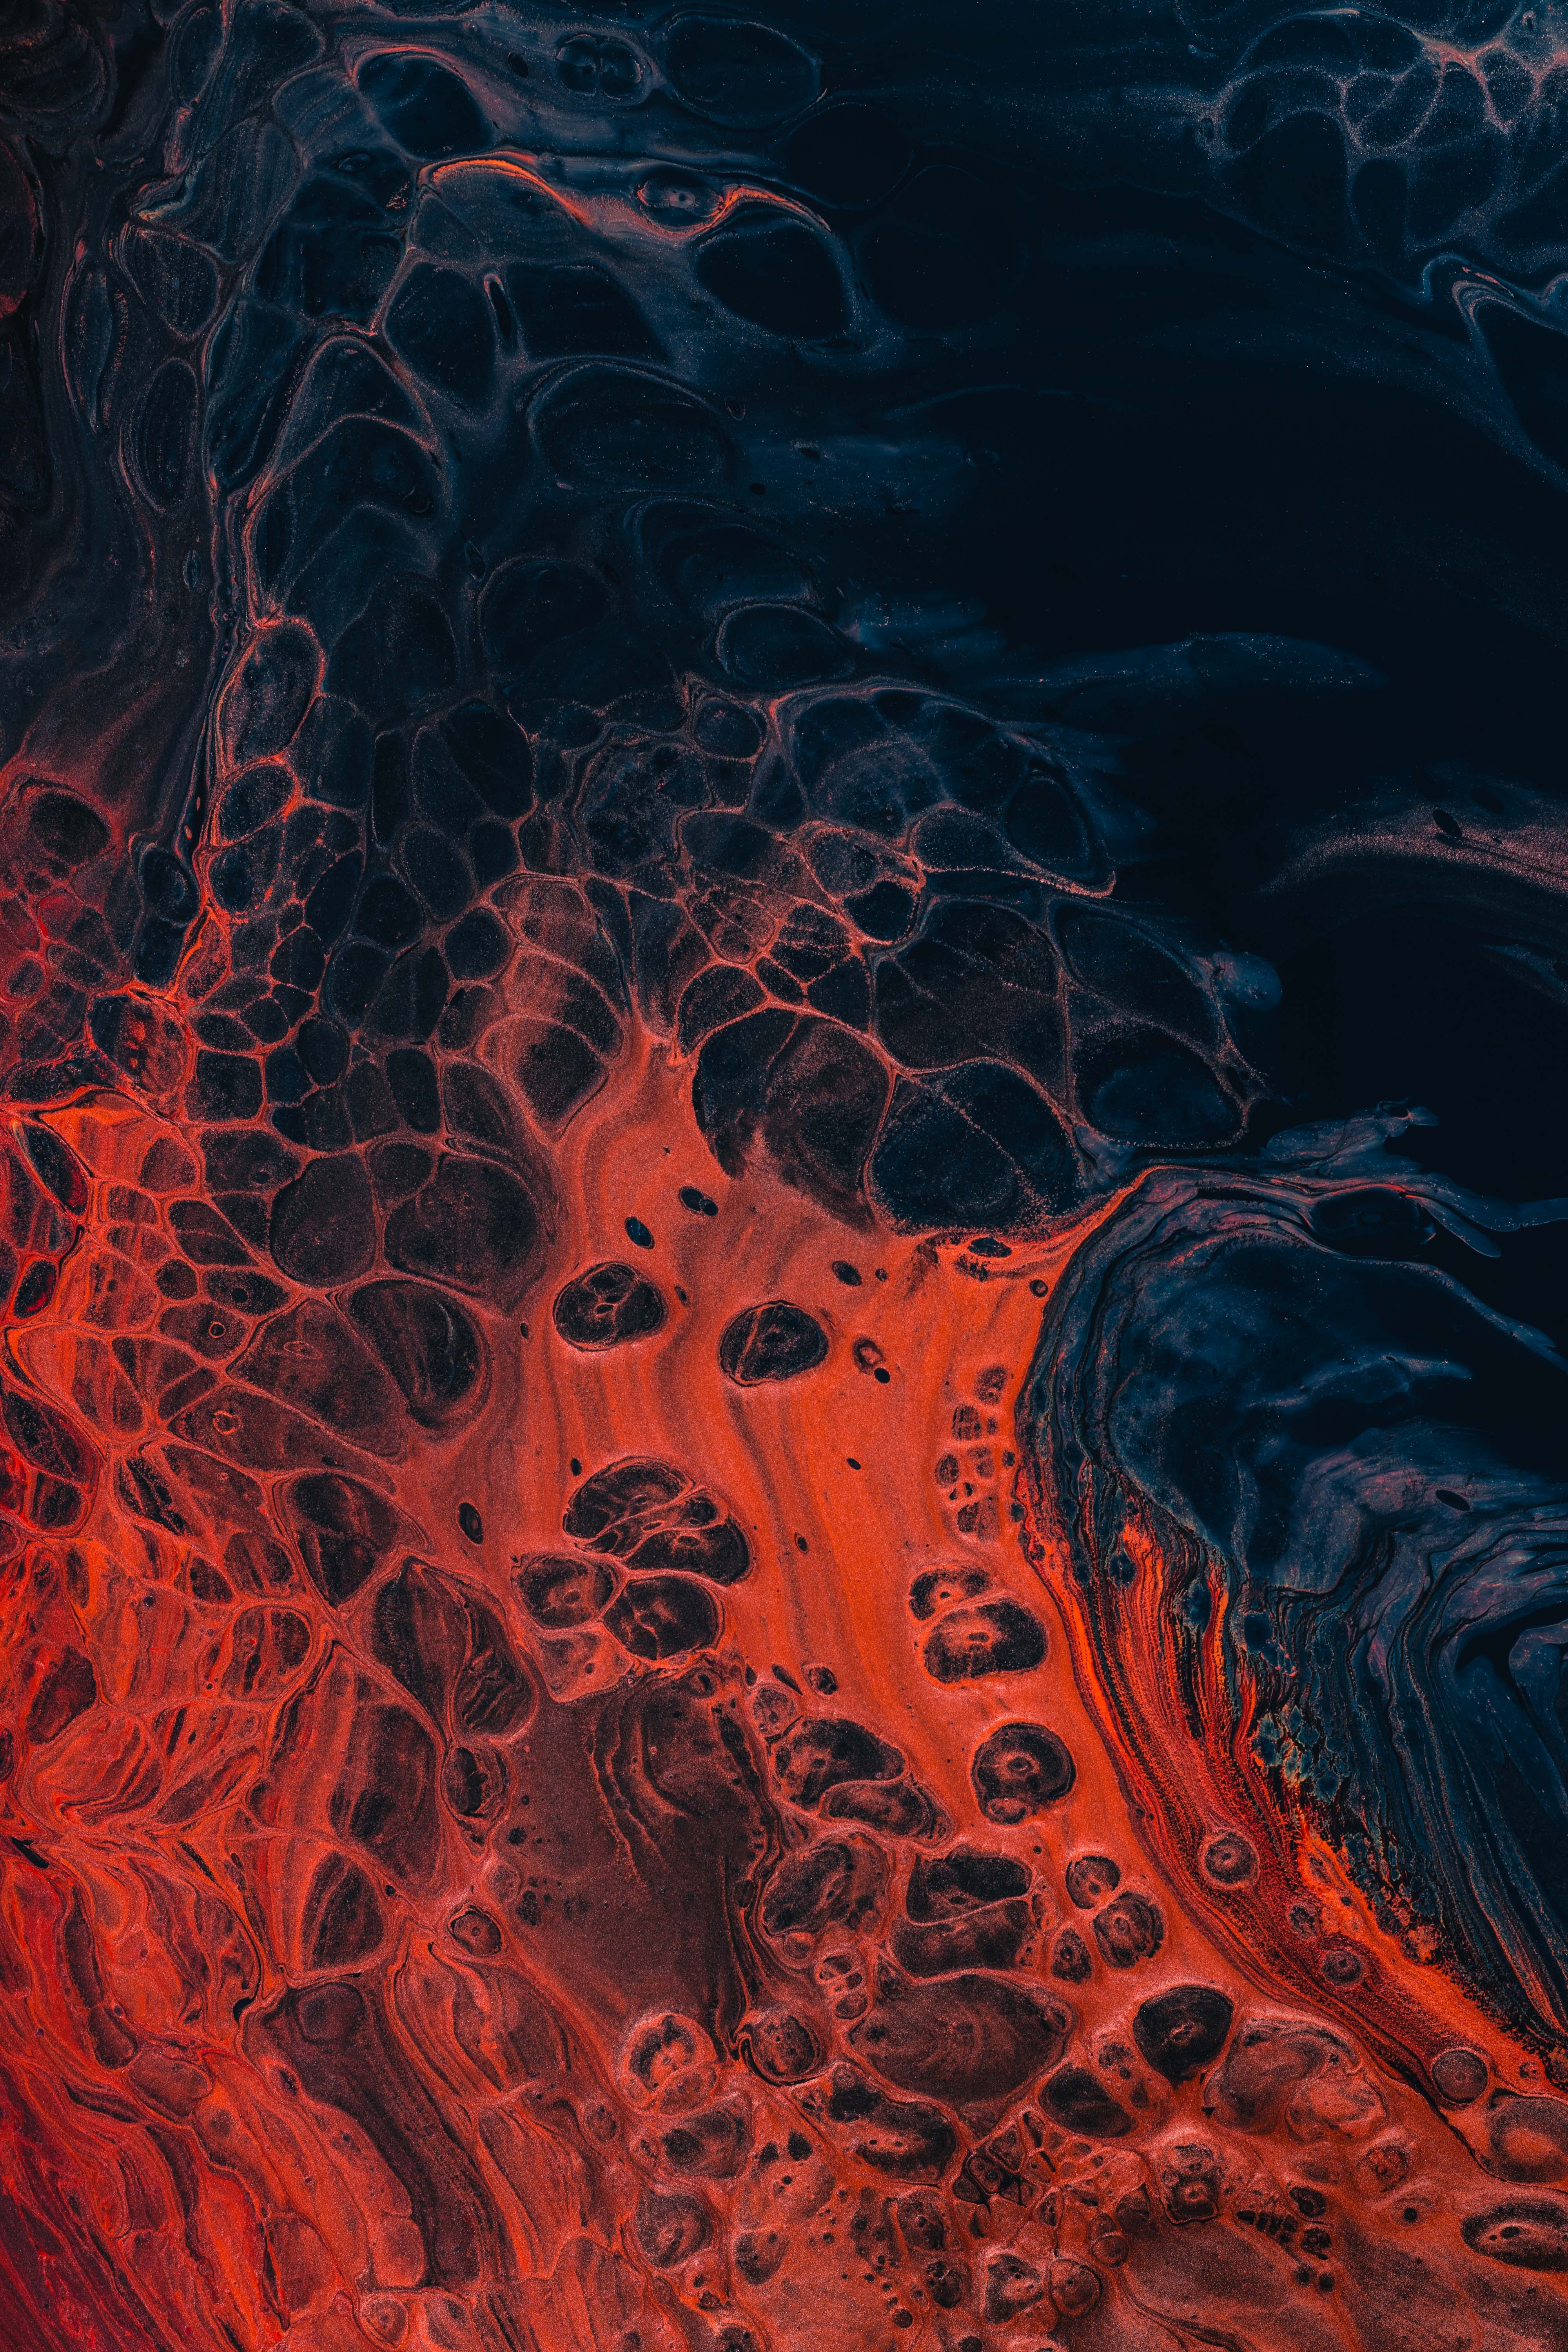 59895 Screensavers and Wallpapers Liquid for phone. Download Abstract, Bubbles, Dark, Divorces, Paint, Liquid pictures for free